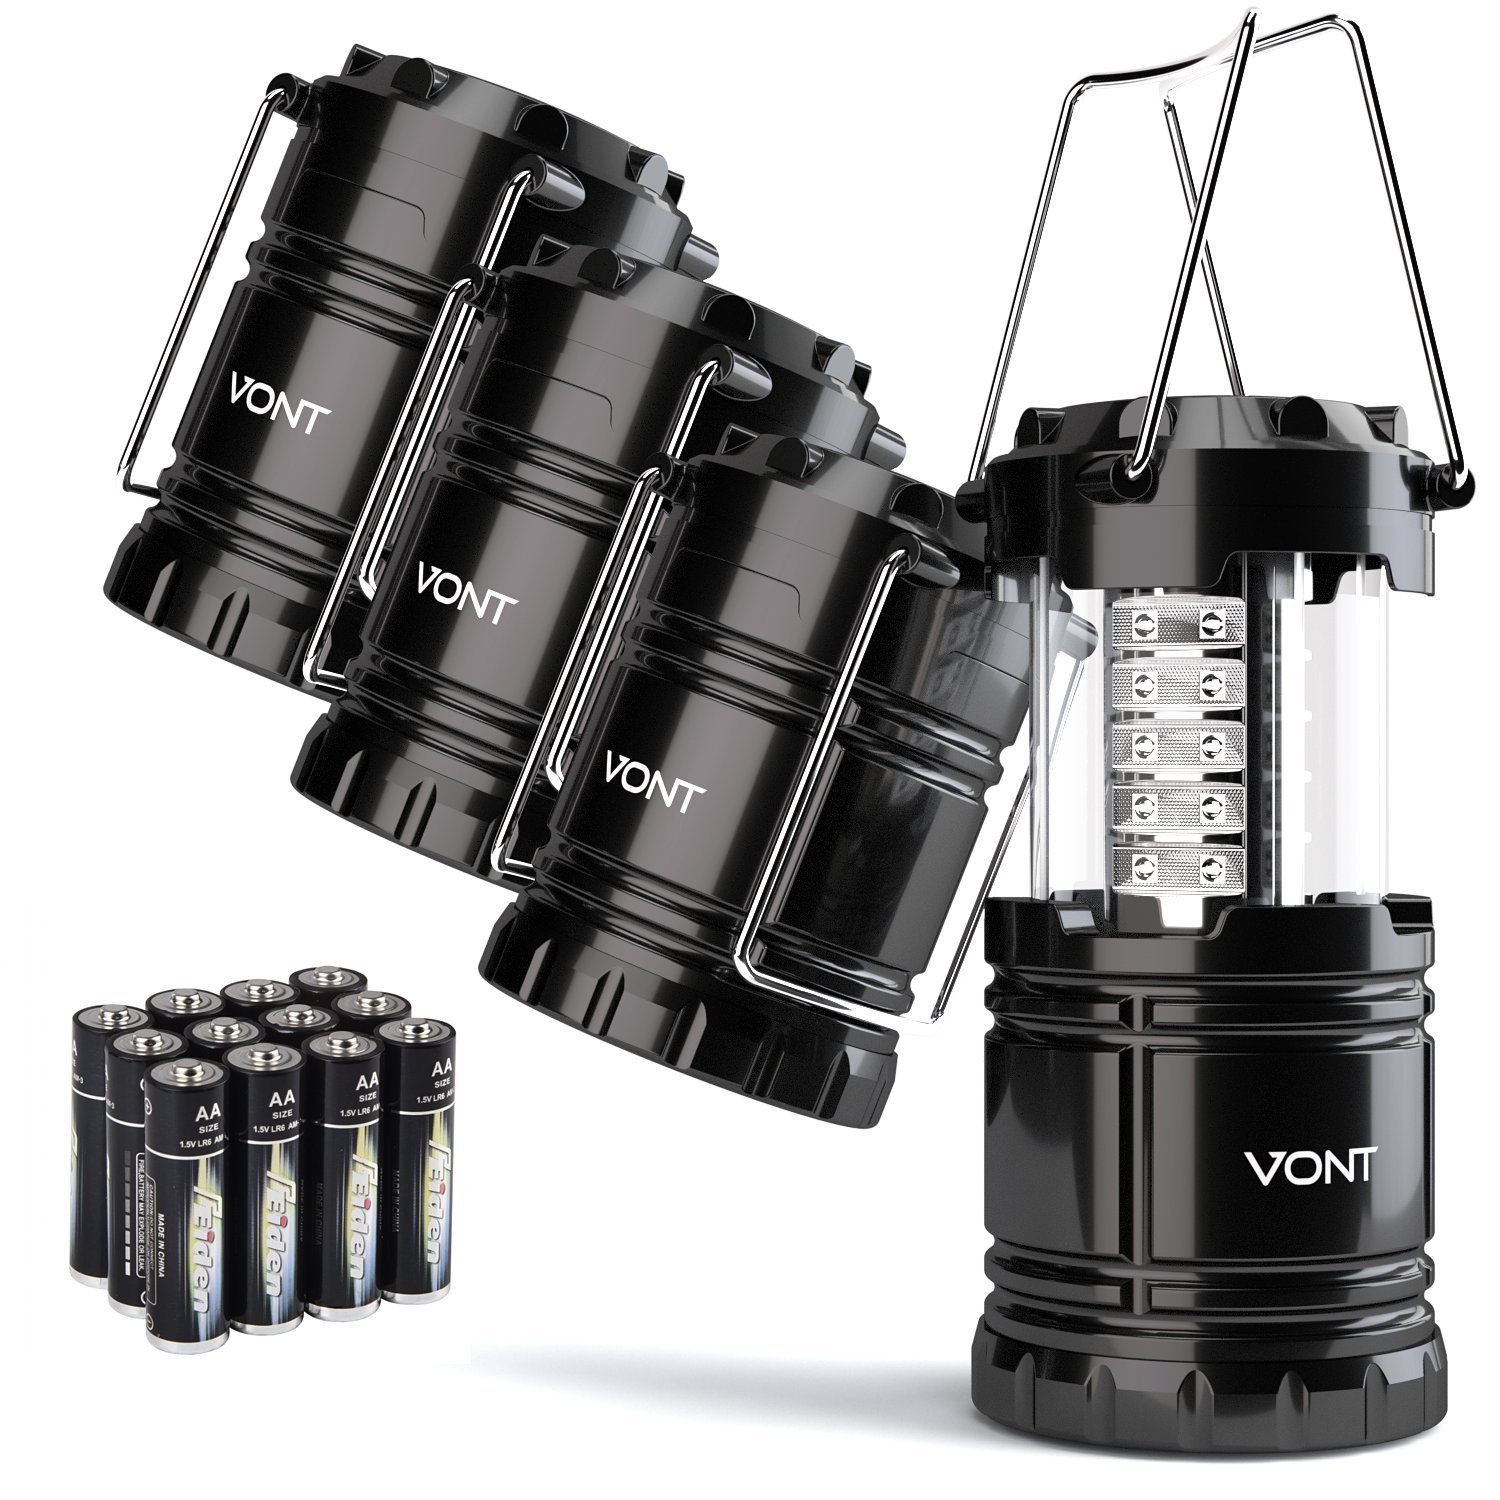 Vont 4 Pack LED Camping Lantern, LED Lantern, Suitable for Survival Kits for Hurricane, Emergency Light, Storm, Outages, Outdoor Portable Lanterns, Black, Collapsible, Batteries Included